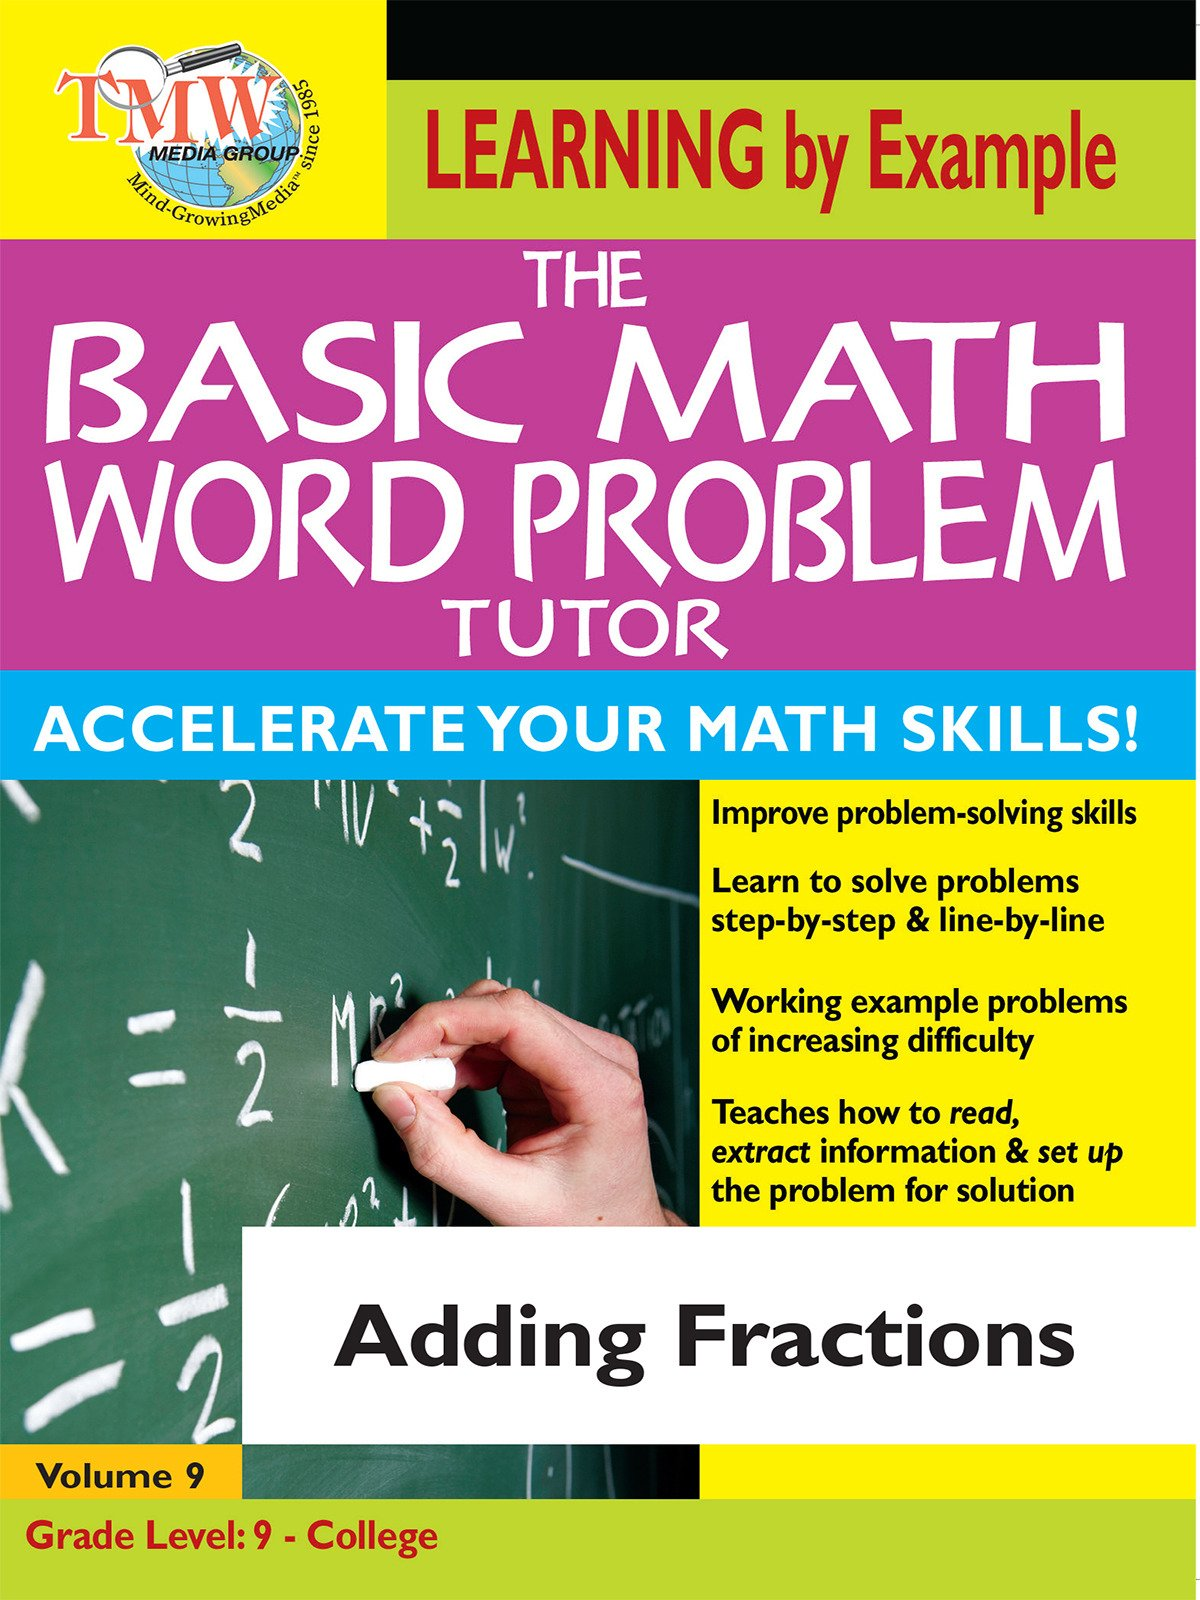 Basic Math Word Problem Tutor: Adding Fractions on Amazon Prime Video UK